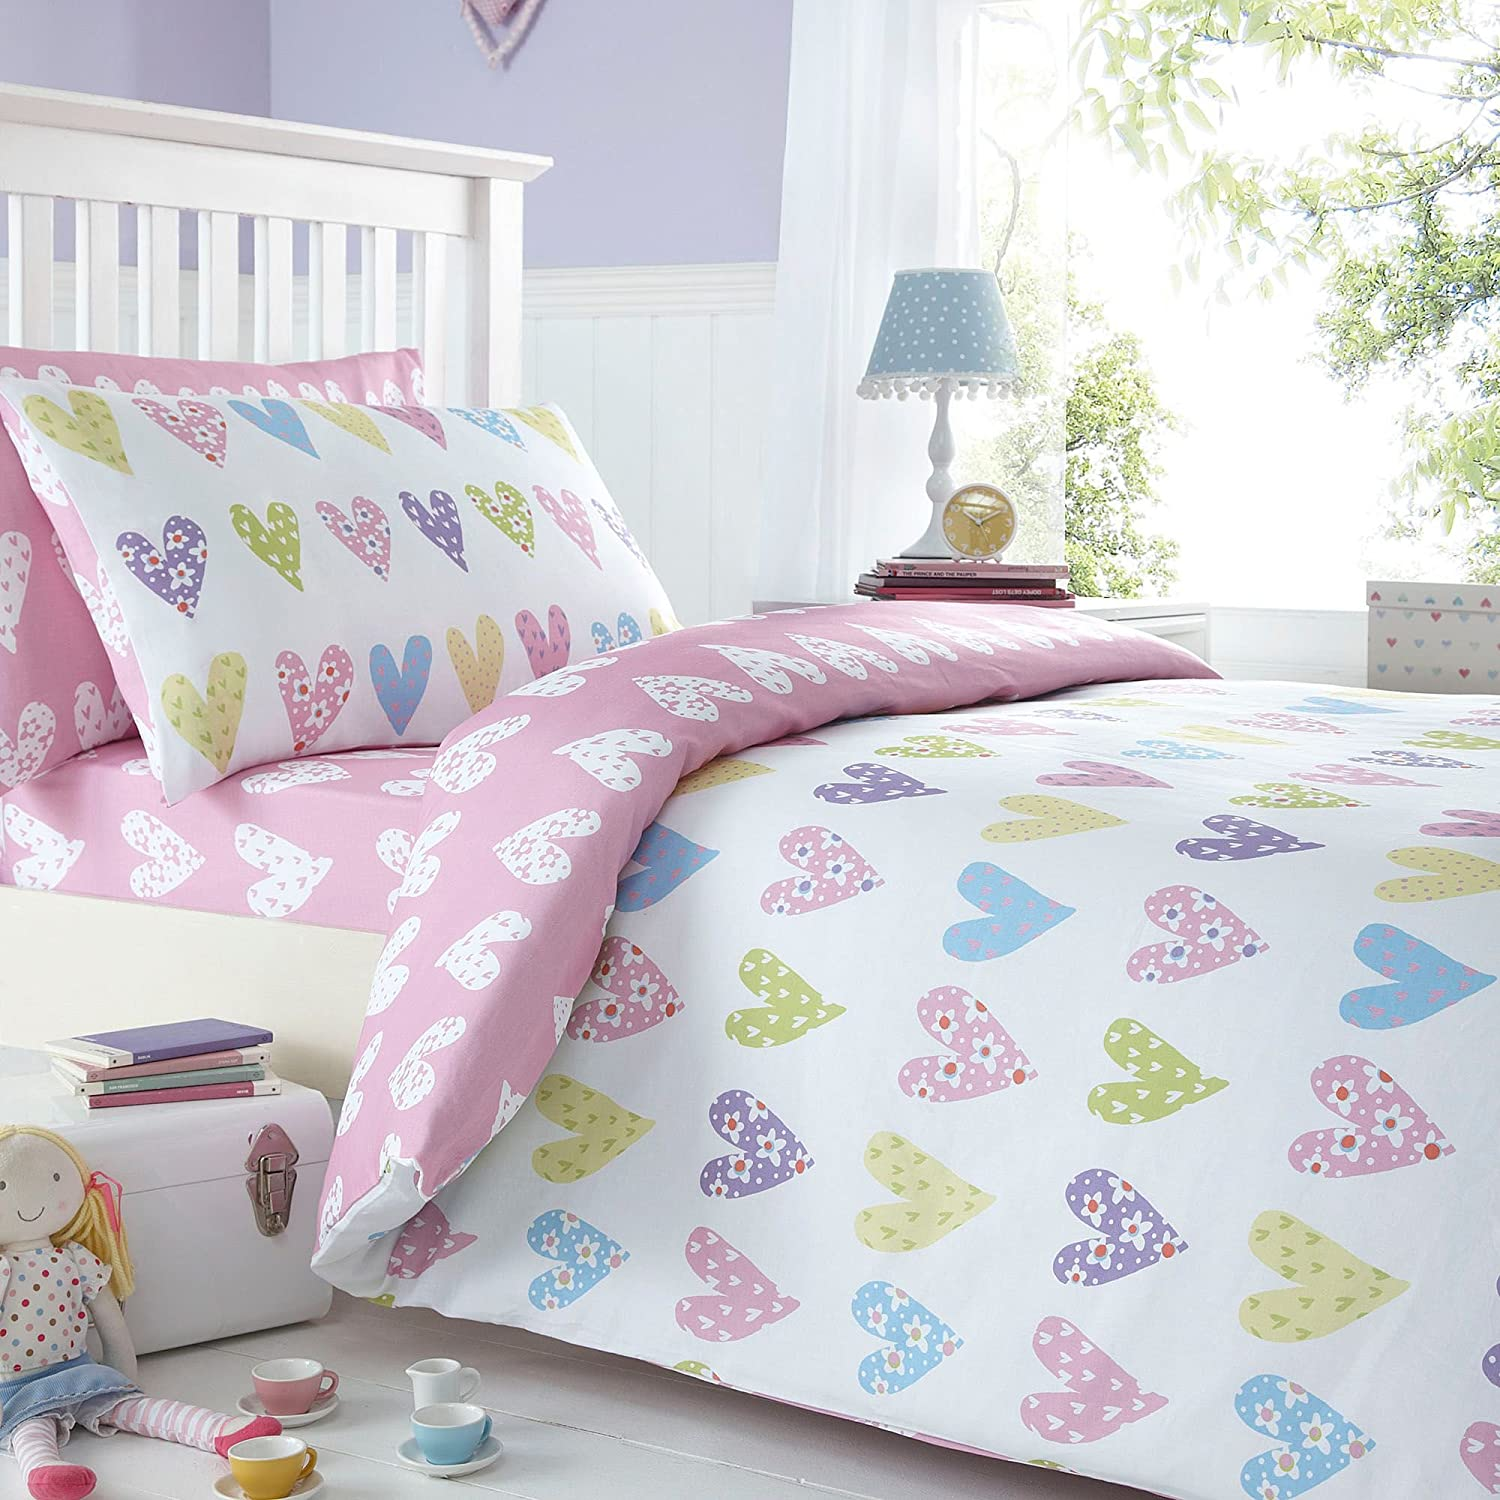 Find great deals on eBay for kids duvet covers. Shop with confidence.